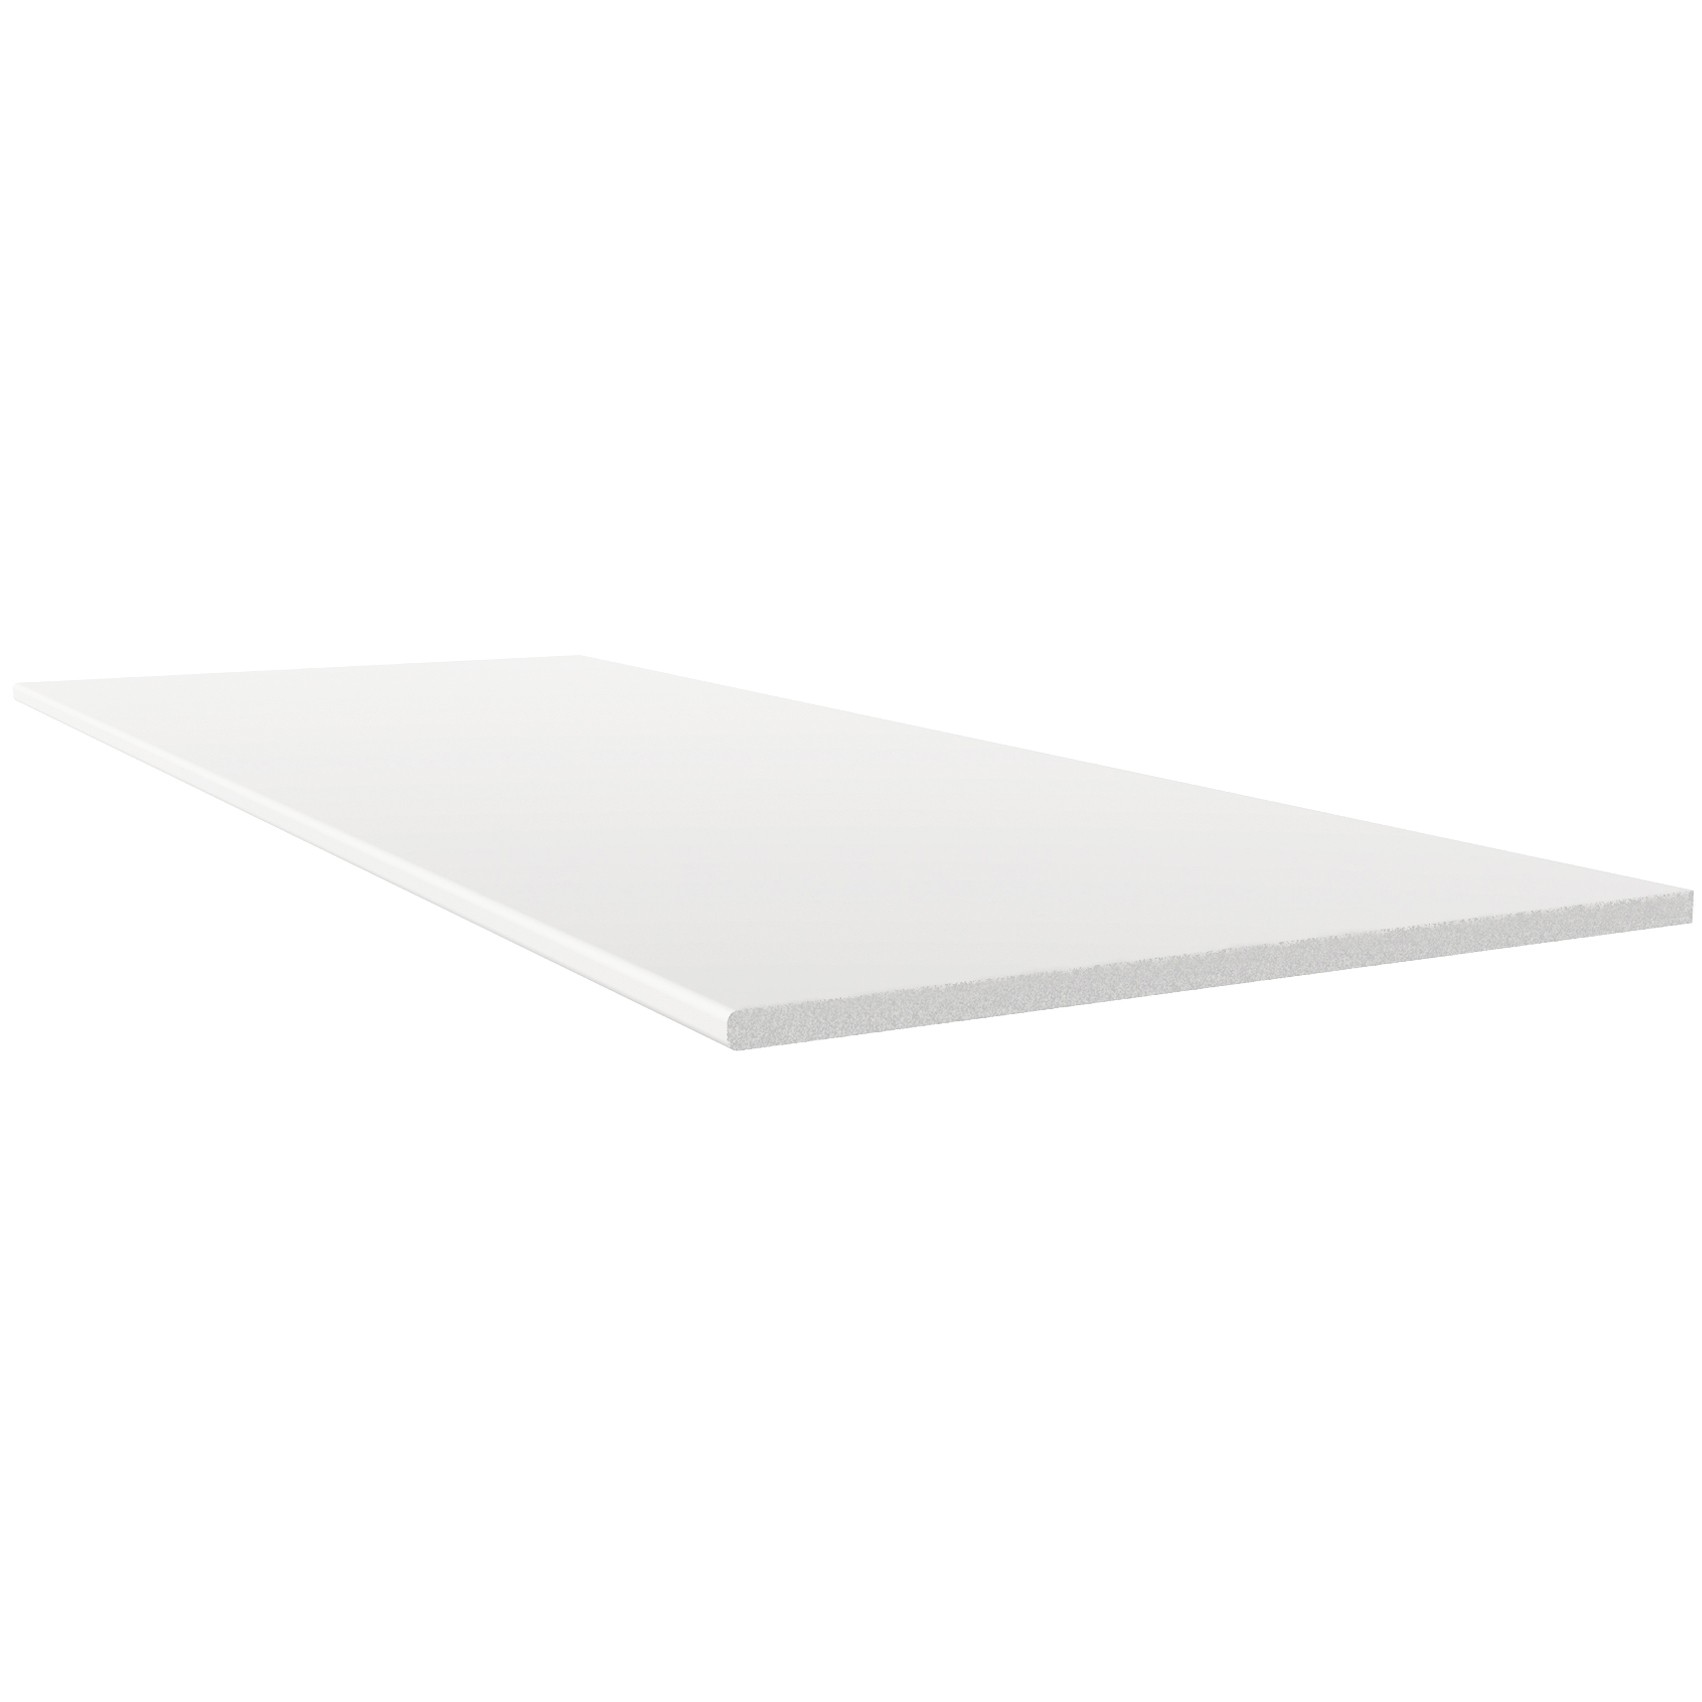 Freefoam 10mm Solid Soffit Board - White, 100mm, 5 metre